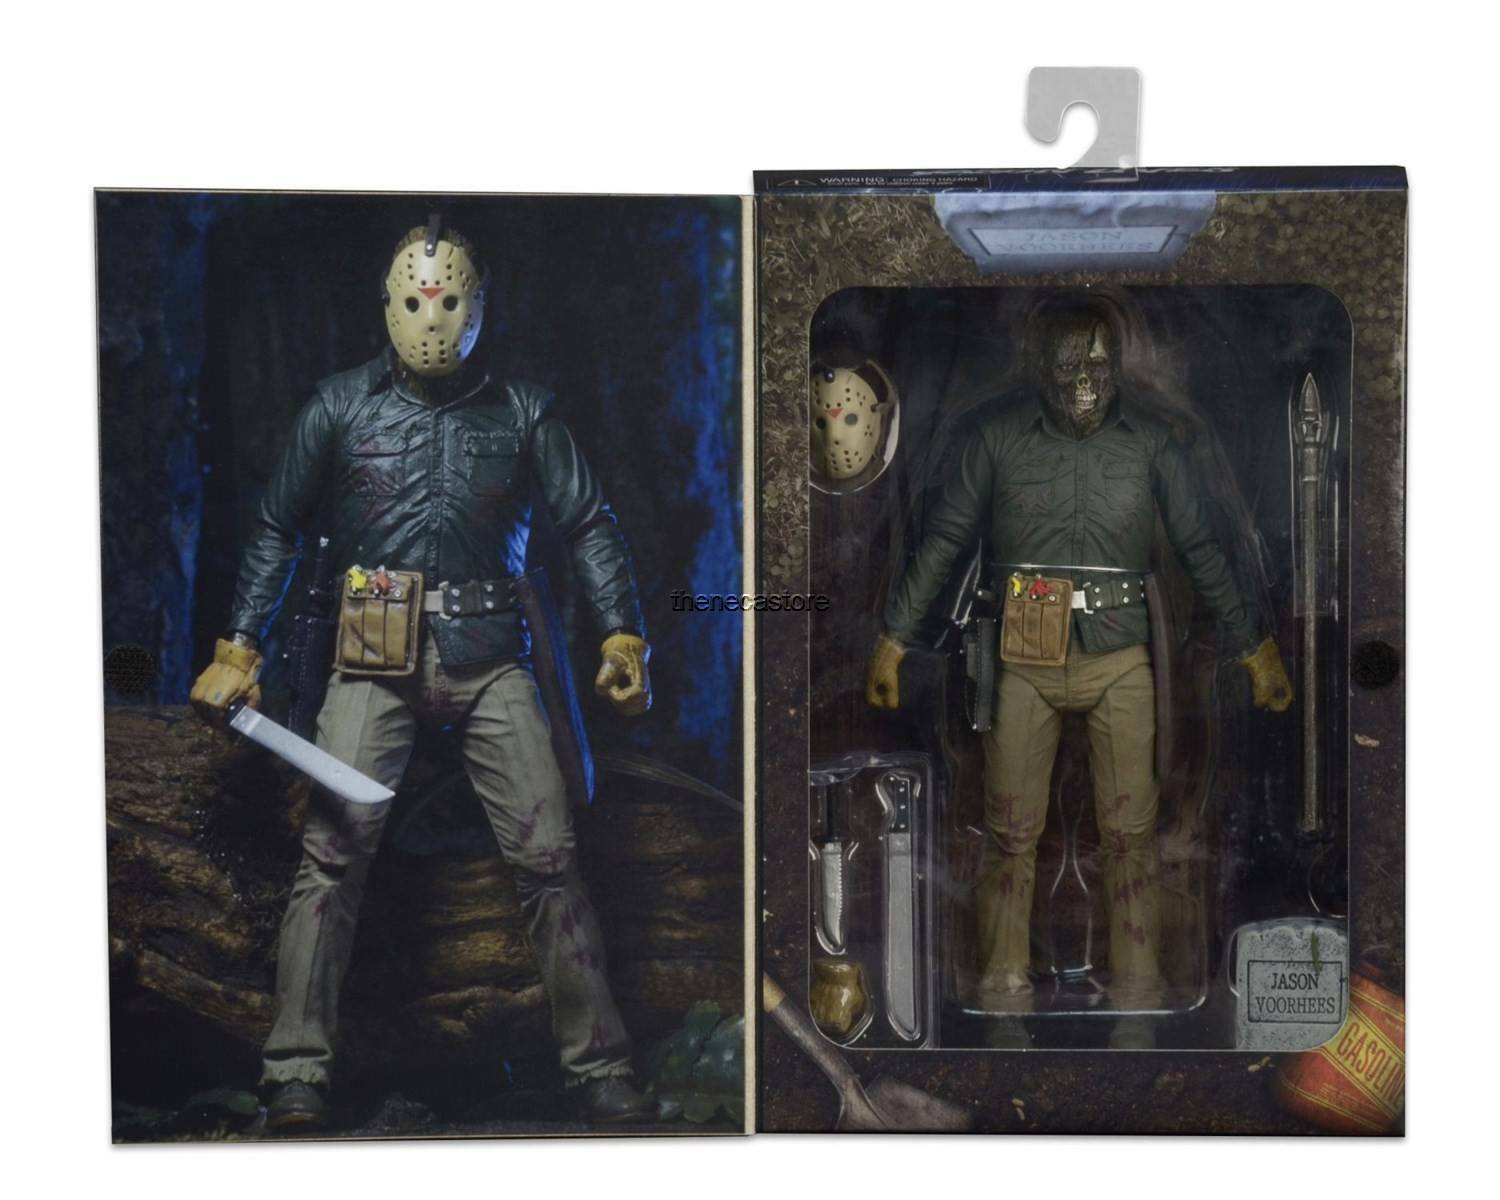 """Friday the 13th - 7"""" Scale Action Figure - Ultimate Part 6 Jason Voorhees - NECA"""